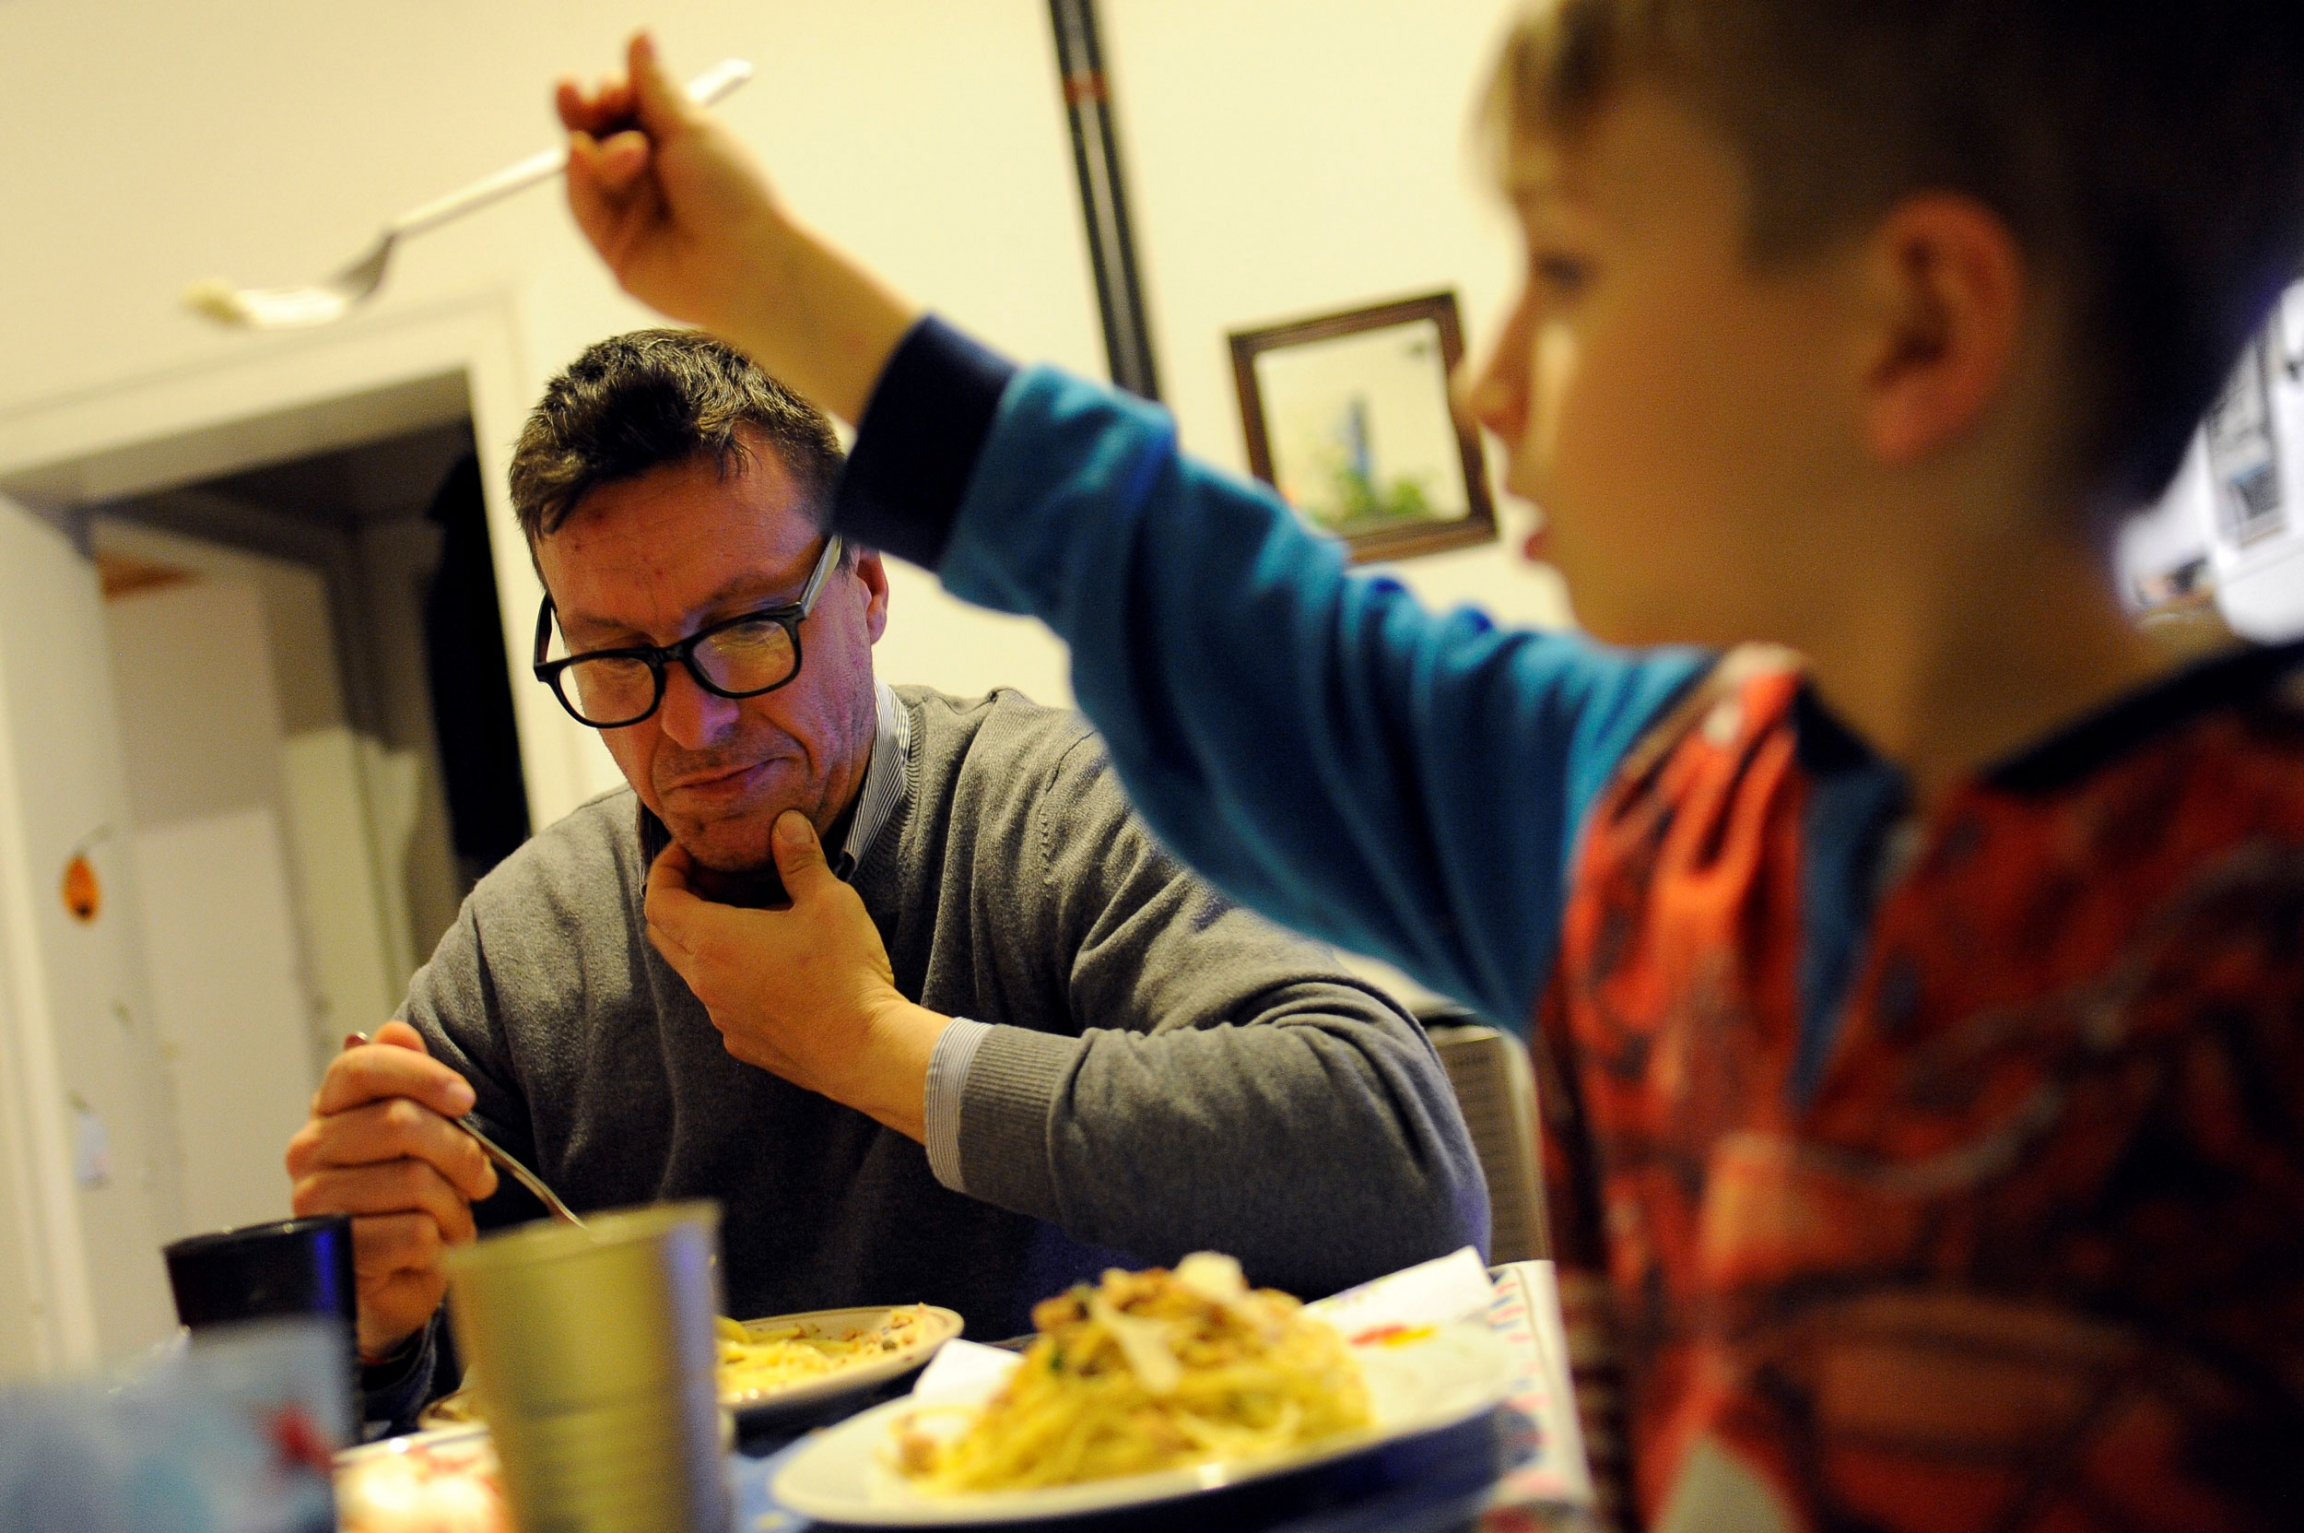 A young boy is shown in the nearground of the photo holding up a fork with his father sitting in the background eating from a plate of food.